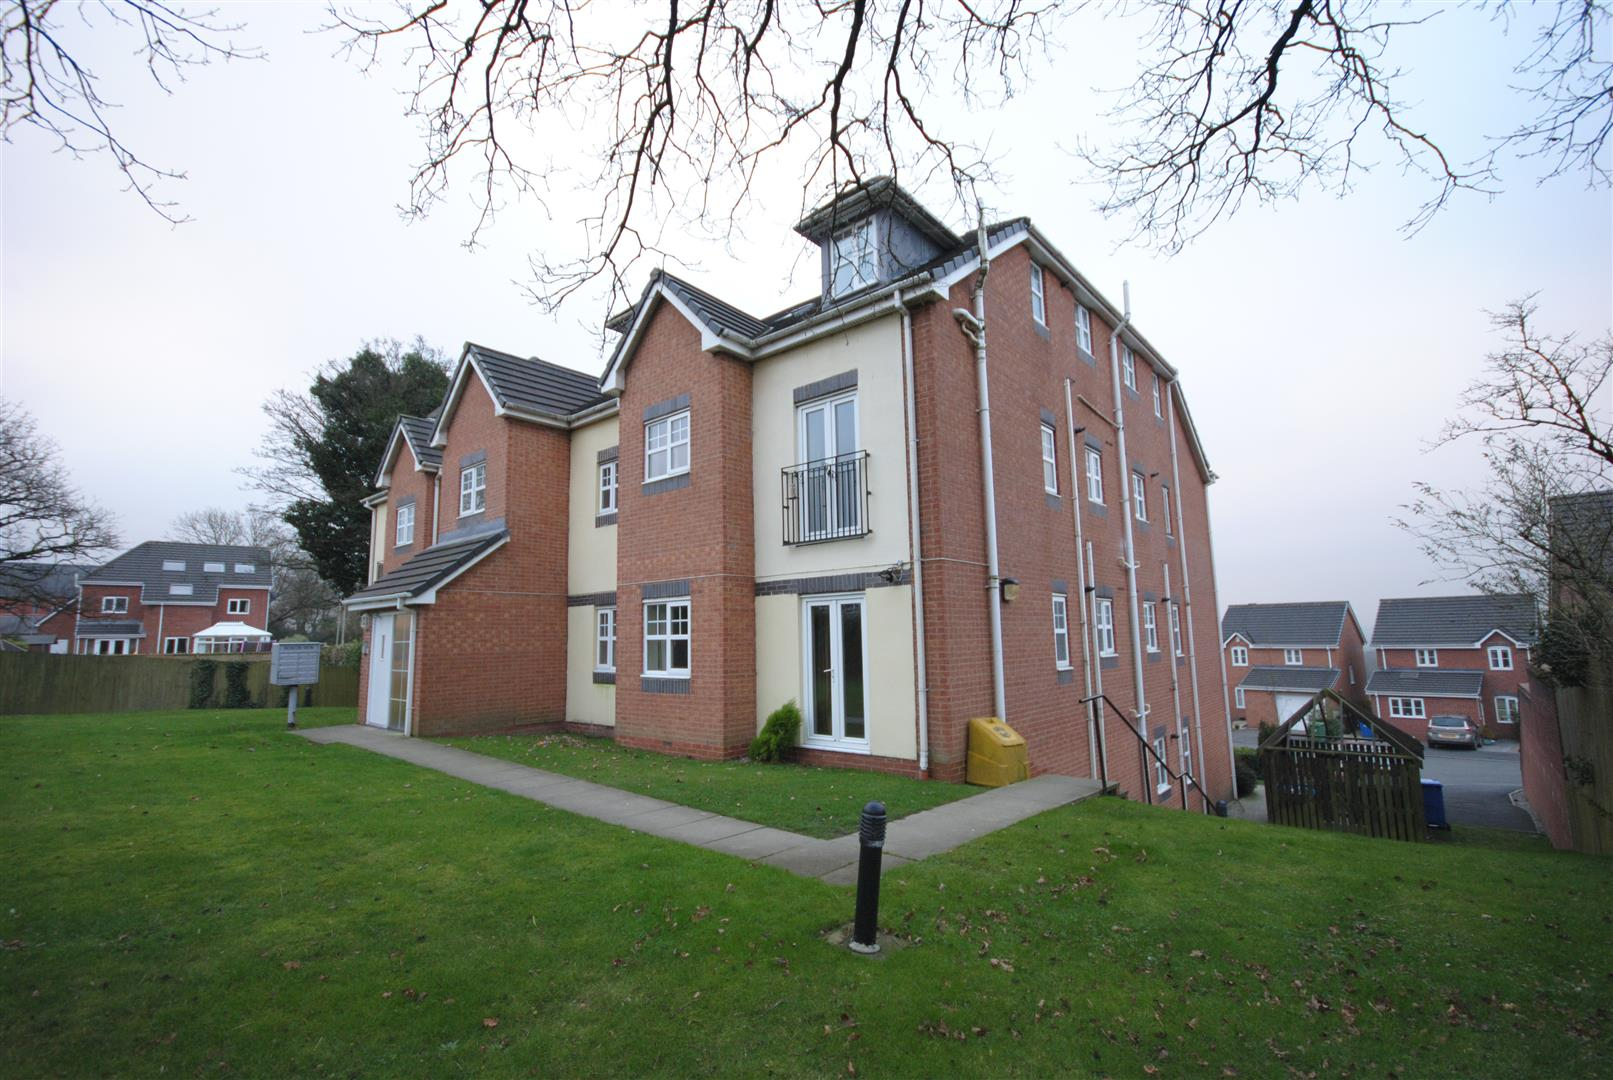 2 Bedrooms Apartment Flat for sale in Beacon View, Standish, Wigan